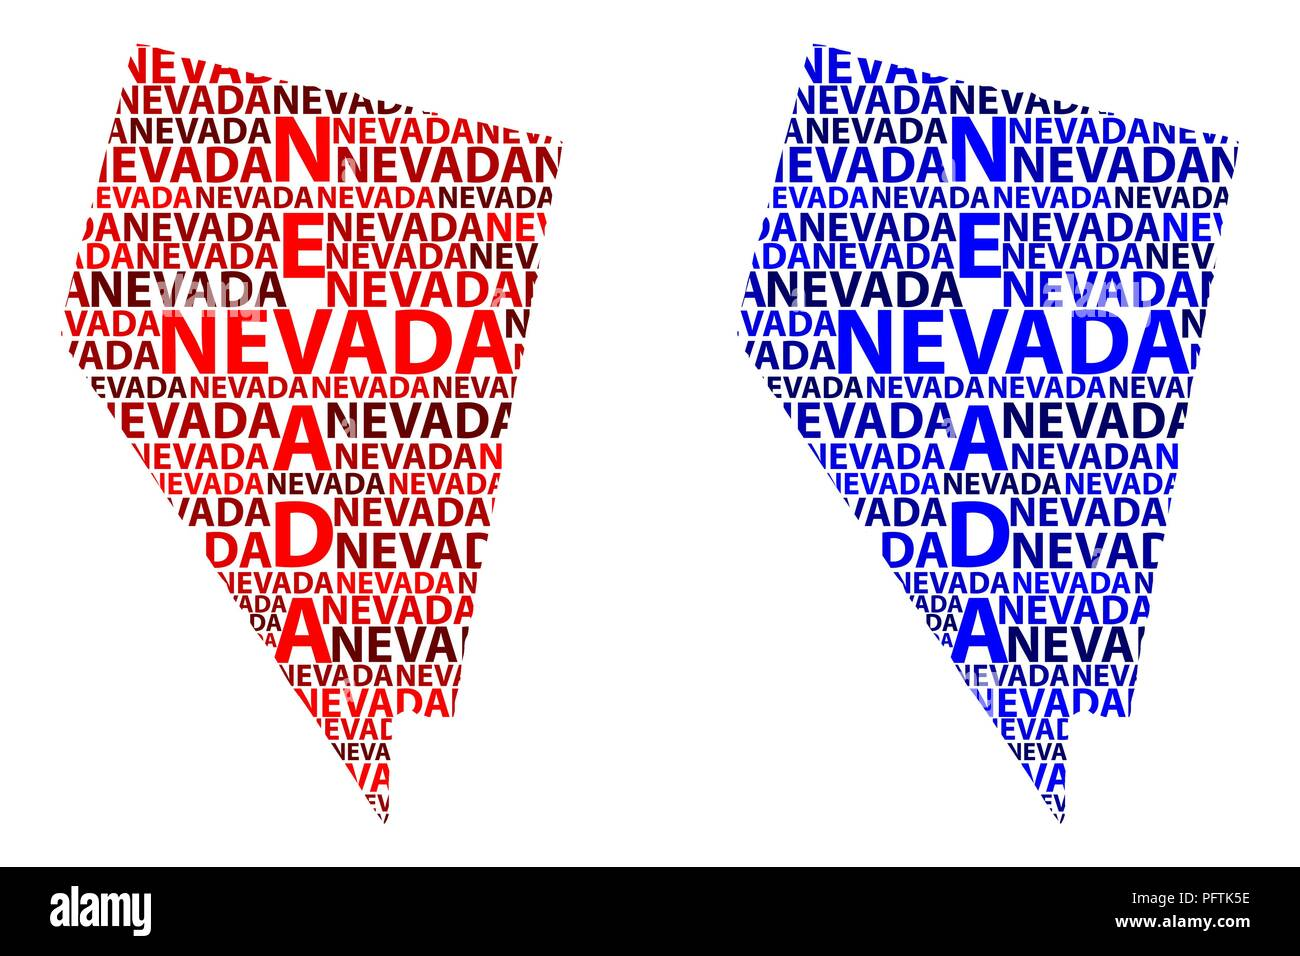 Sketch Nevada United States Of America Letter Text Map Nevada Map In The Shape Of The Continent Map Nevada Red And Blue Vector Illustration Stock Vector Image Art Alamy